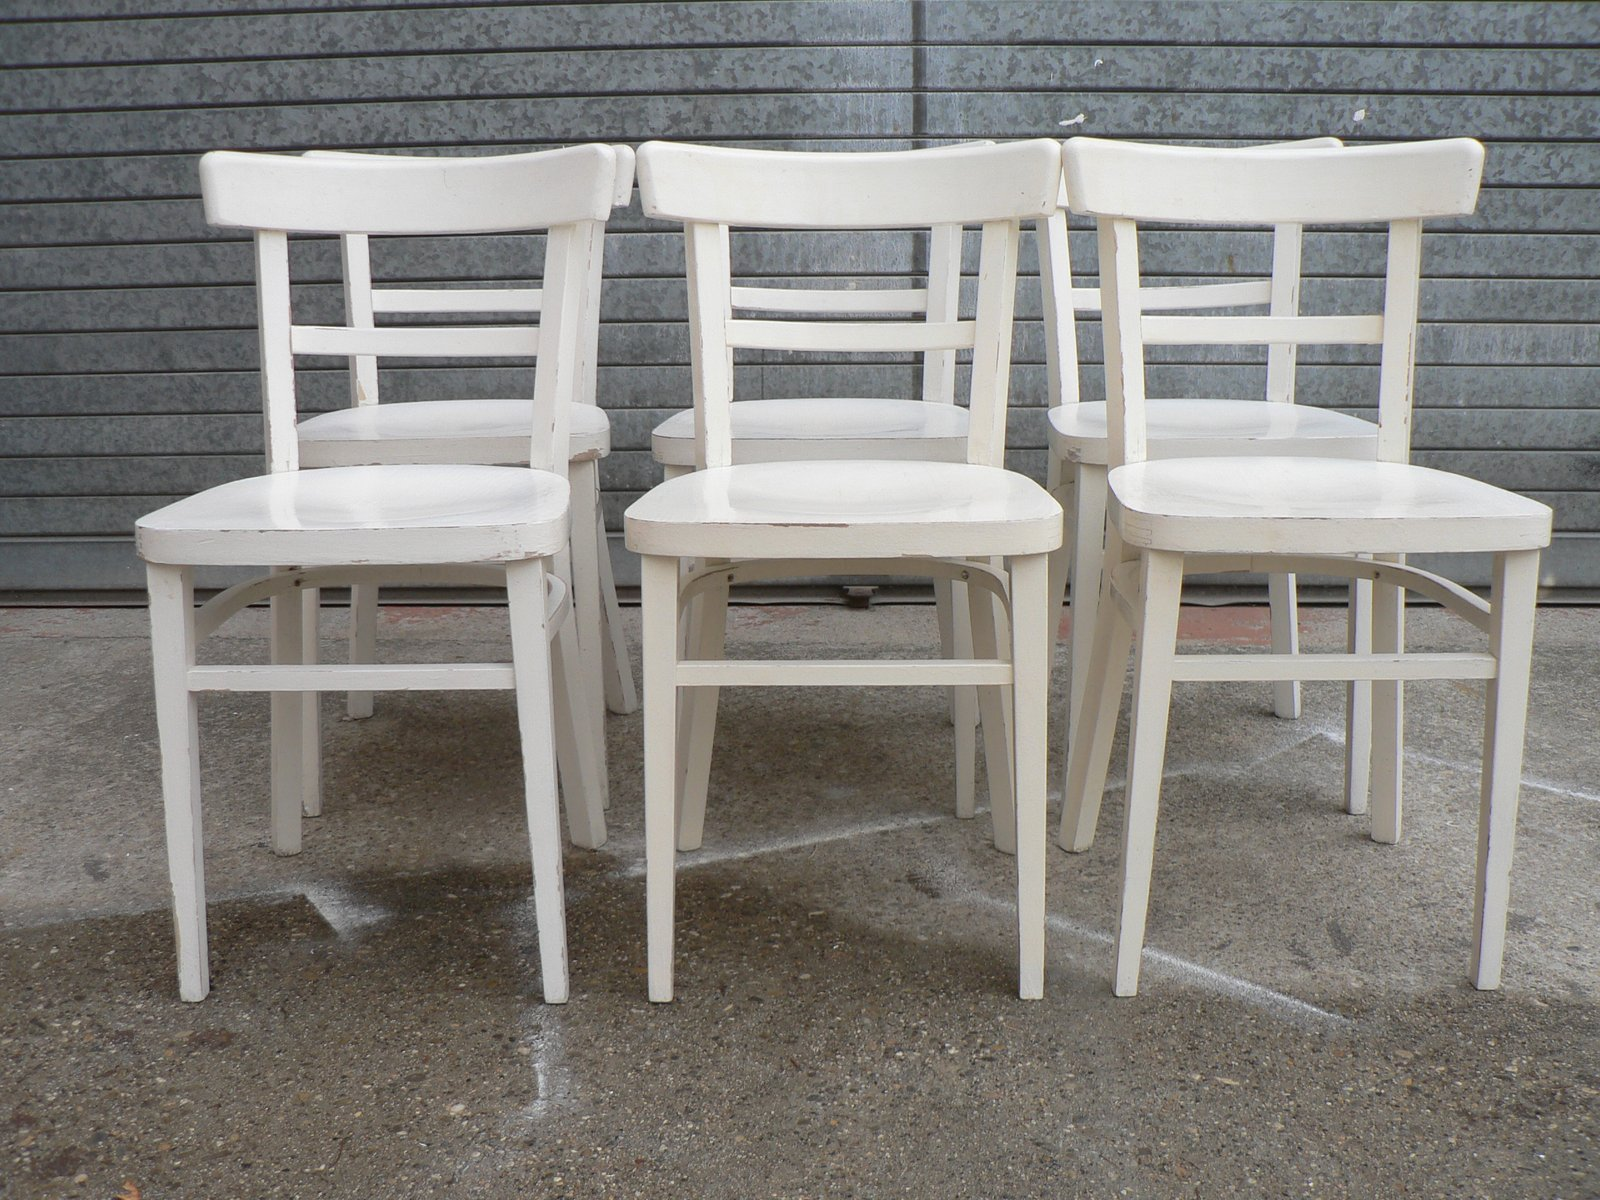 White Bistro Chairs Vintage White Bistro Chairs Set Of 6